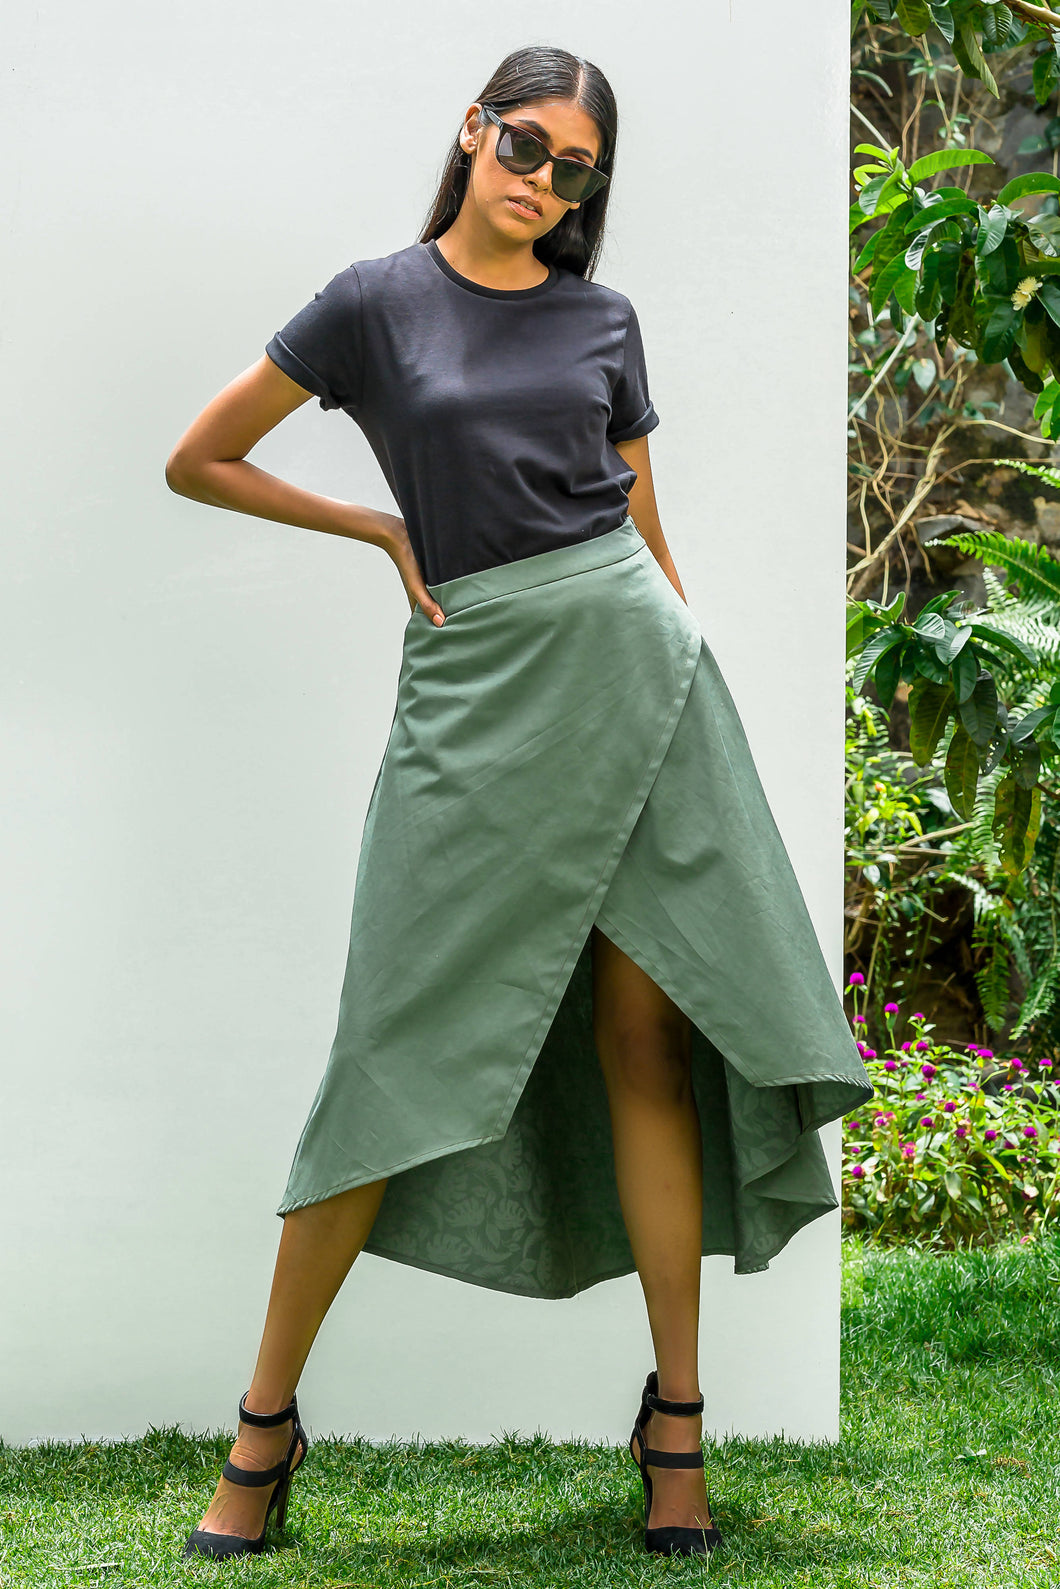 Khaki Chipper Skirt